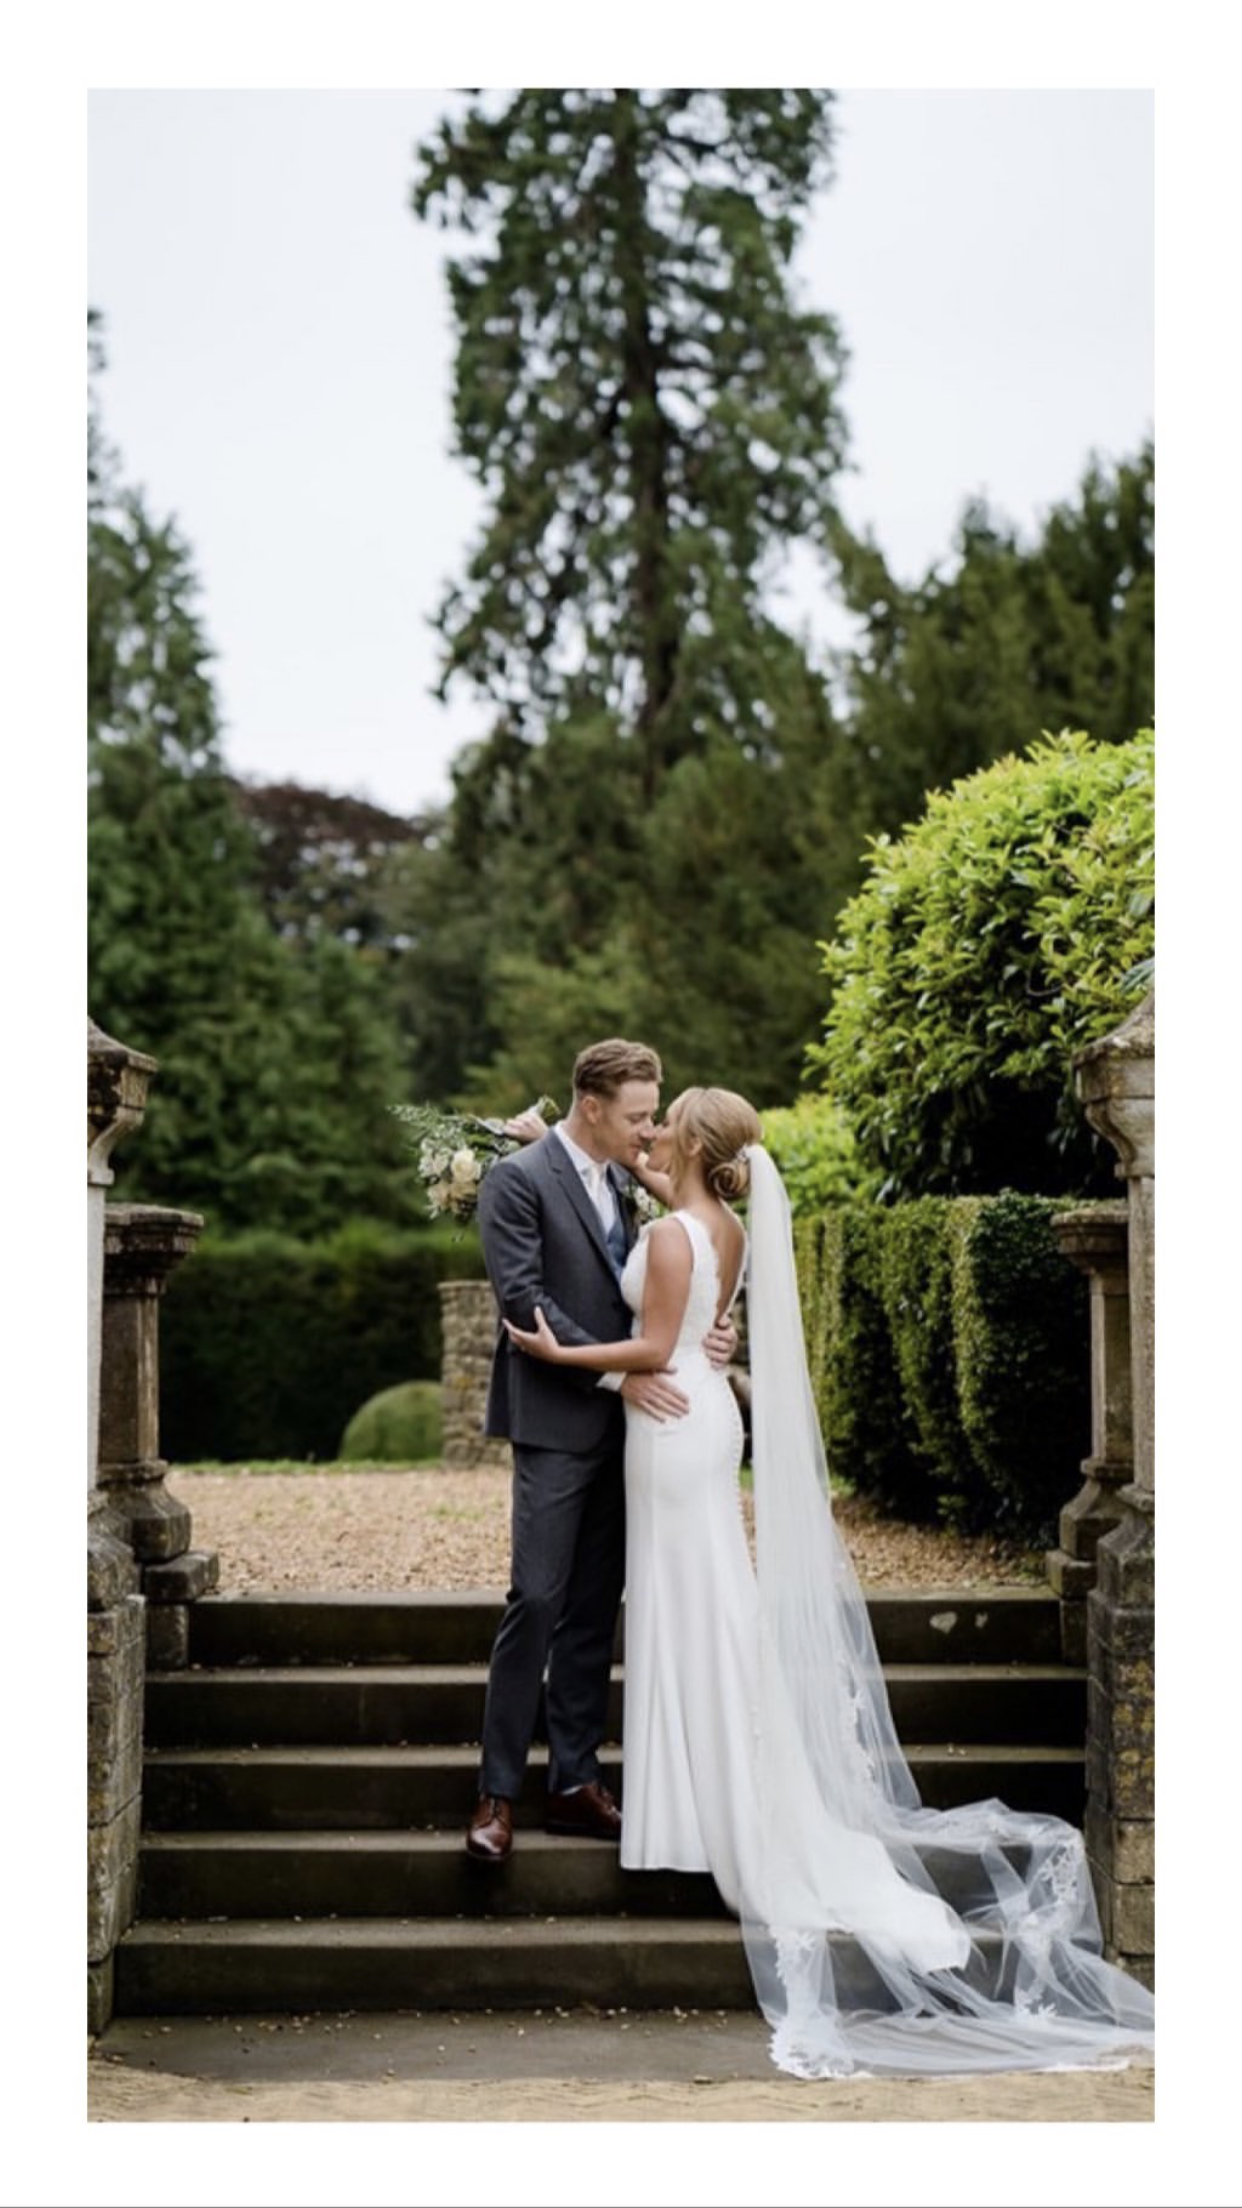 Picuresque manor house wedding with show-stopping bride in bespoke Suzanne Neville.